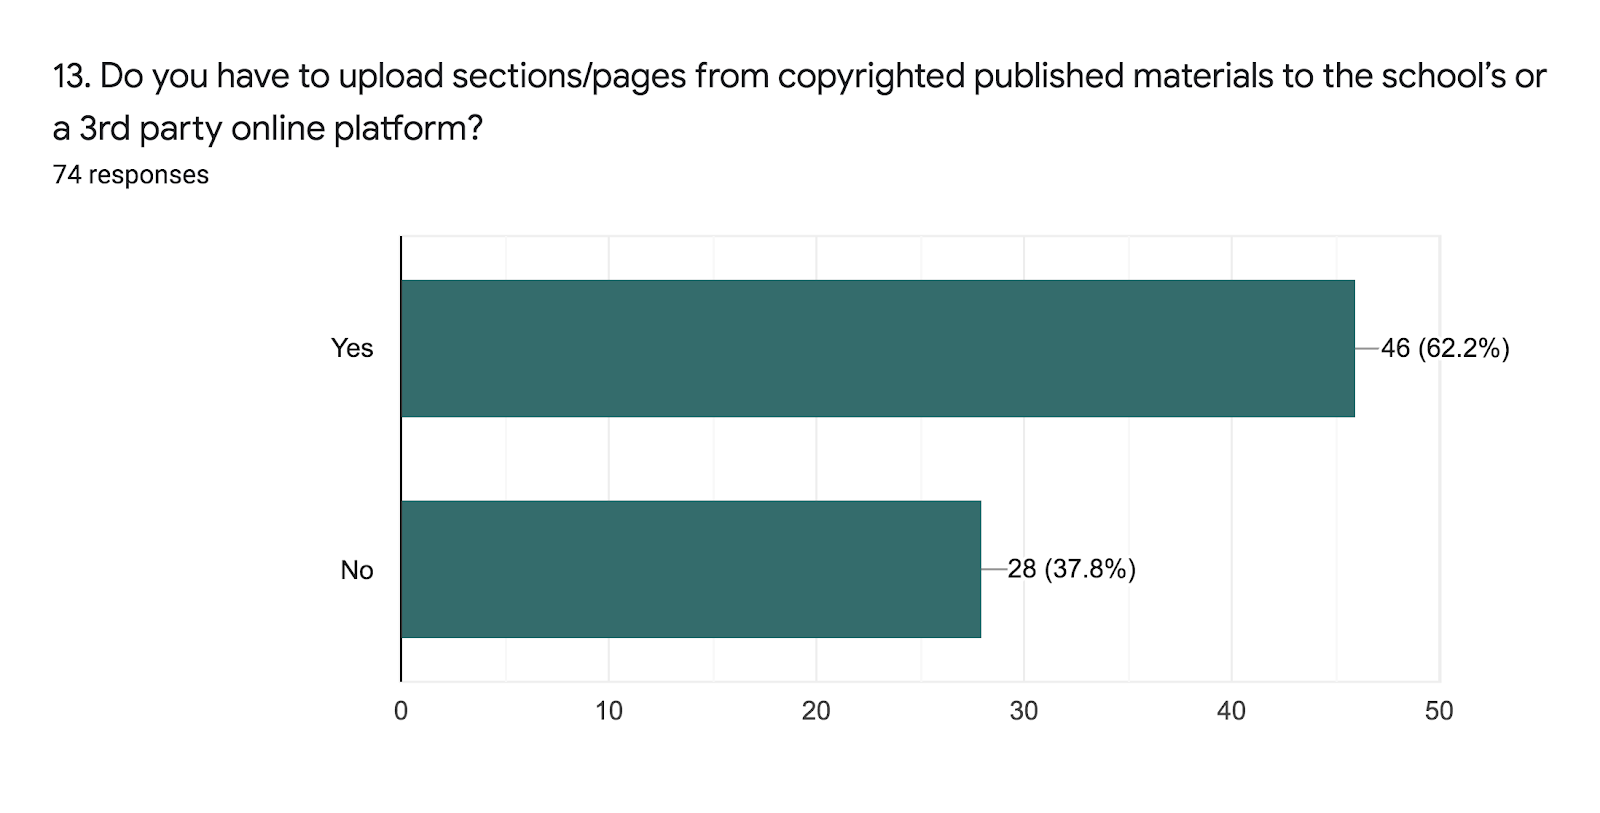 Forms response chart. Question title: 13. Do you have to upload sections/pages from copyrighted published materials to the school's or a 3rd party online platform? . Number of responses: 74 responses.